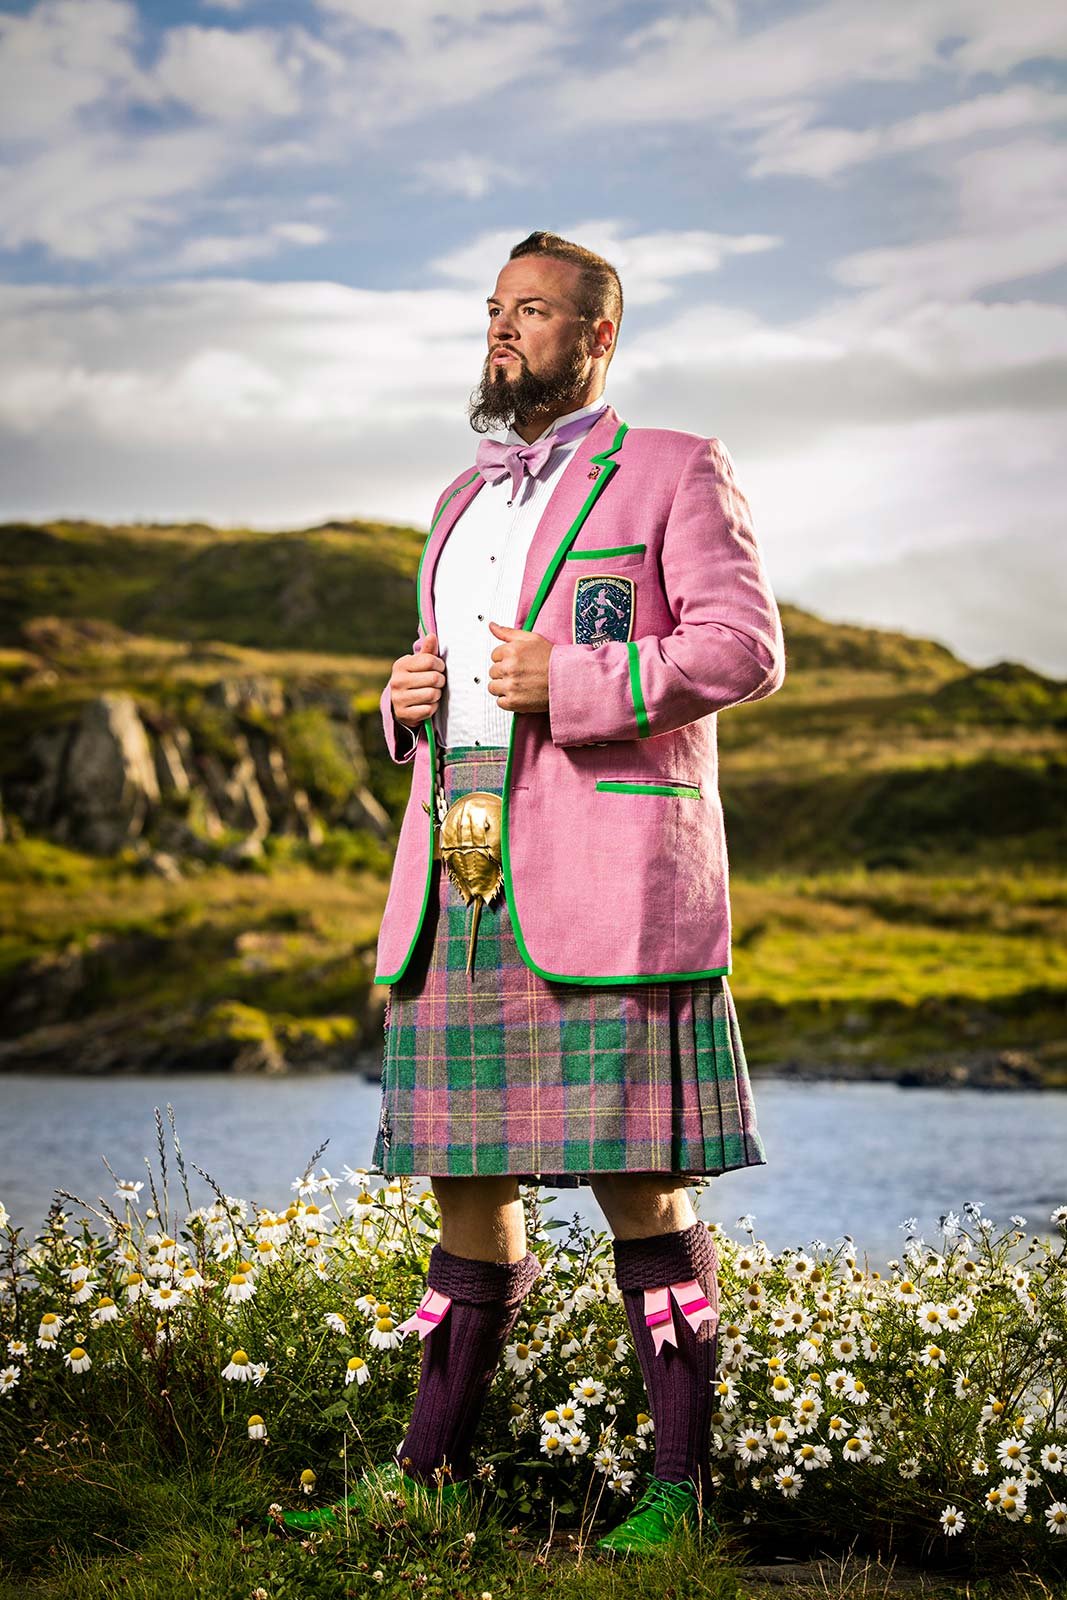 A location portrait of a  man in fashionable kilt amid flowers in Scotland